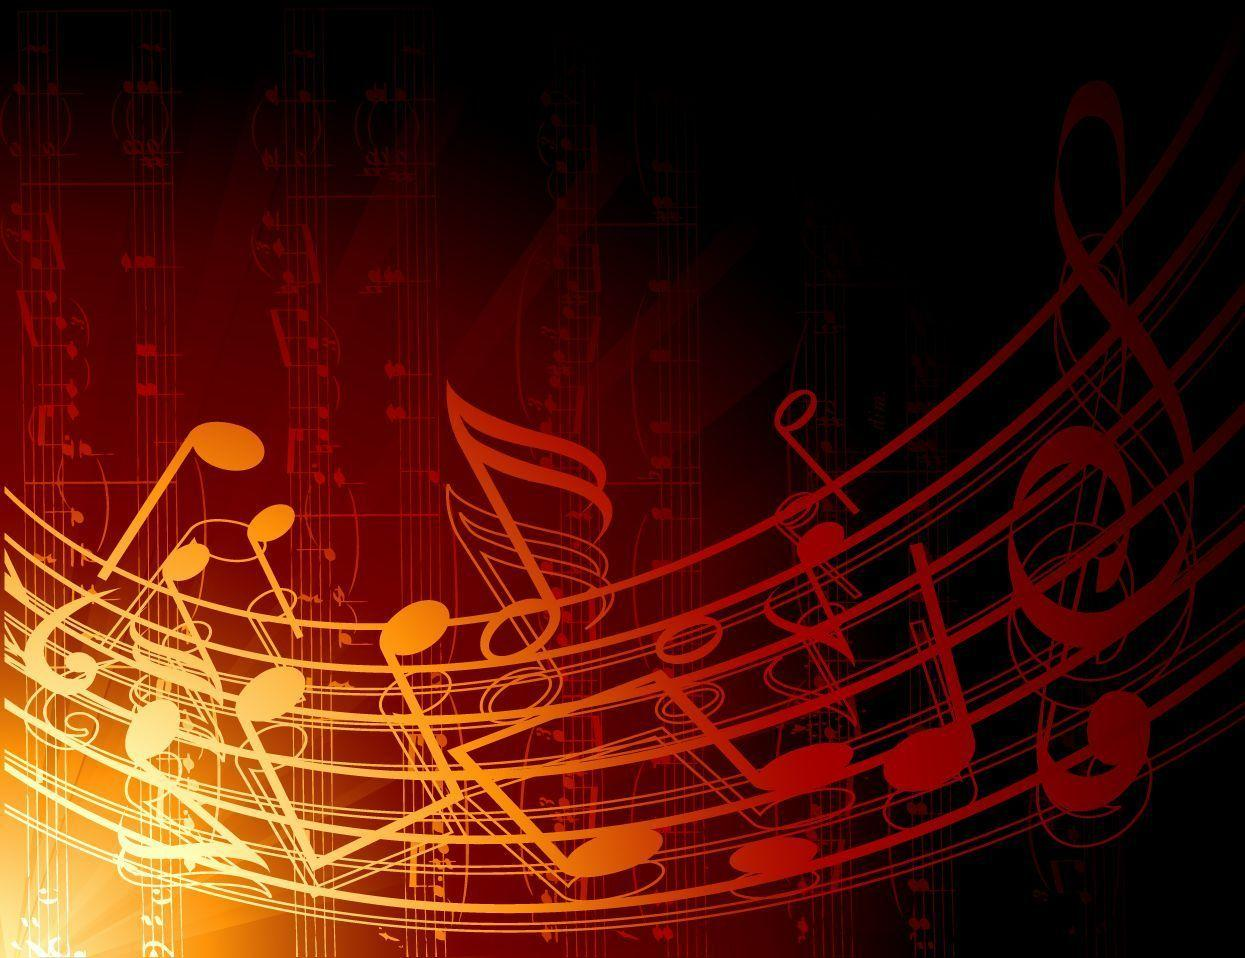 Abstract Orange Music Backgrounds